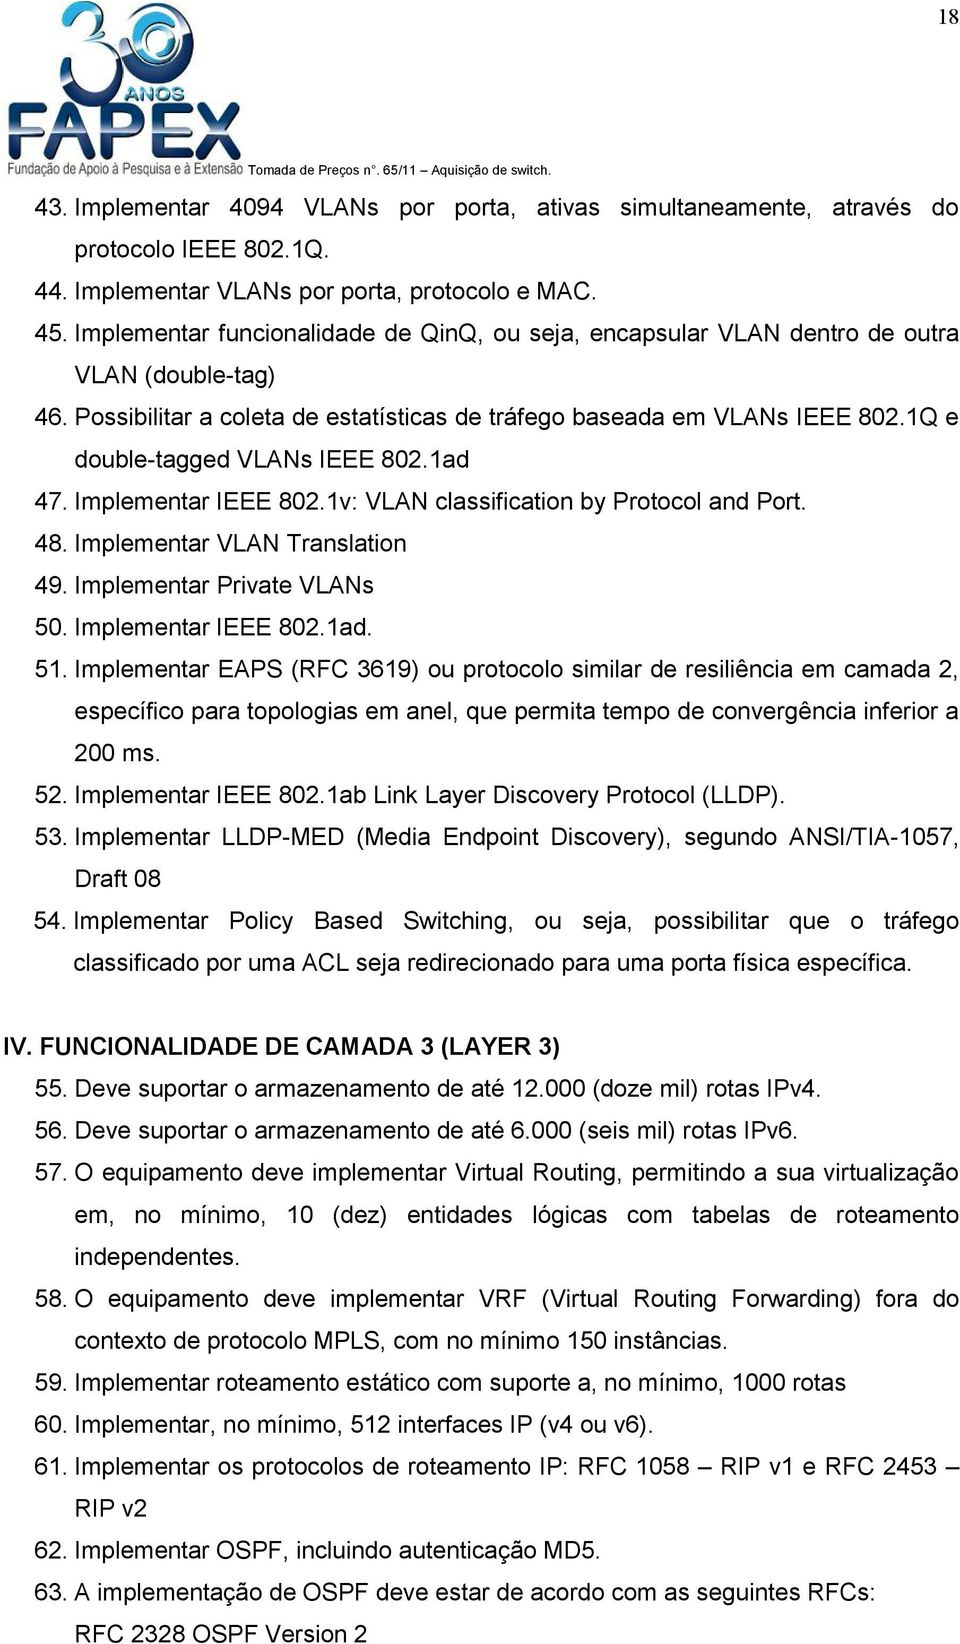 1Q e double-tagged VLANs IEEE 802.1ad 47. Implementar IEEE 802.1v: VLAN classification by Protocol and Port. 48. Implementar VLAN Translation 49. Implementar Private VLANs 50. Implementar IEEE 802.1ad. 51.